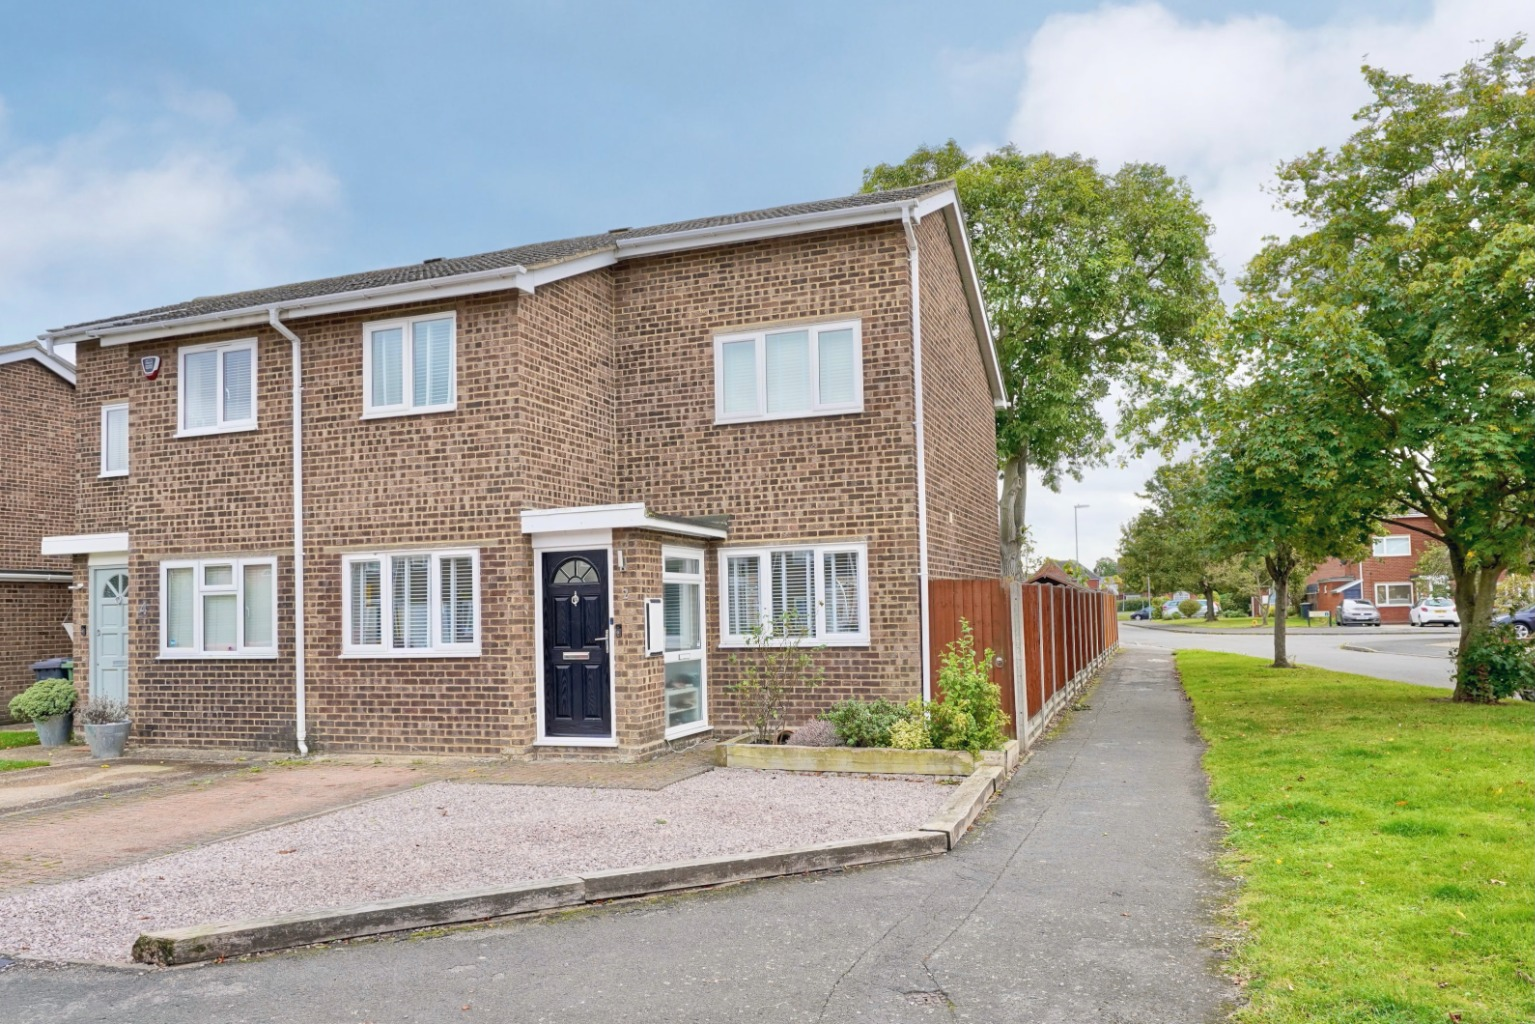 3 bed semi-detached house for sale in Burns Court, St. Neots - Property Image 1